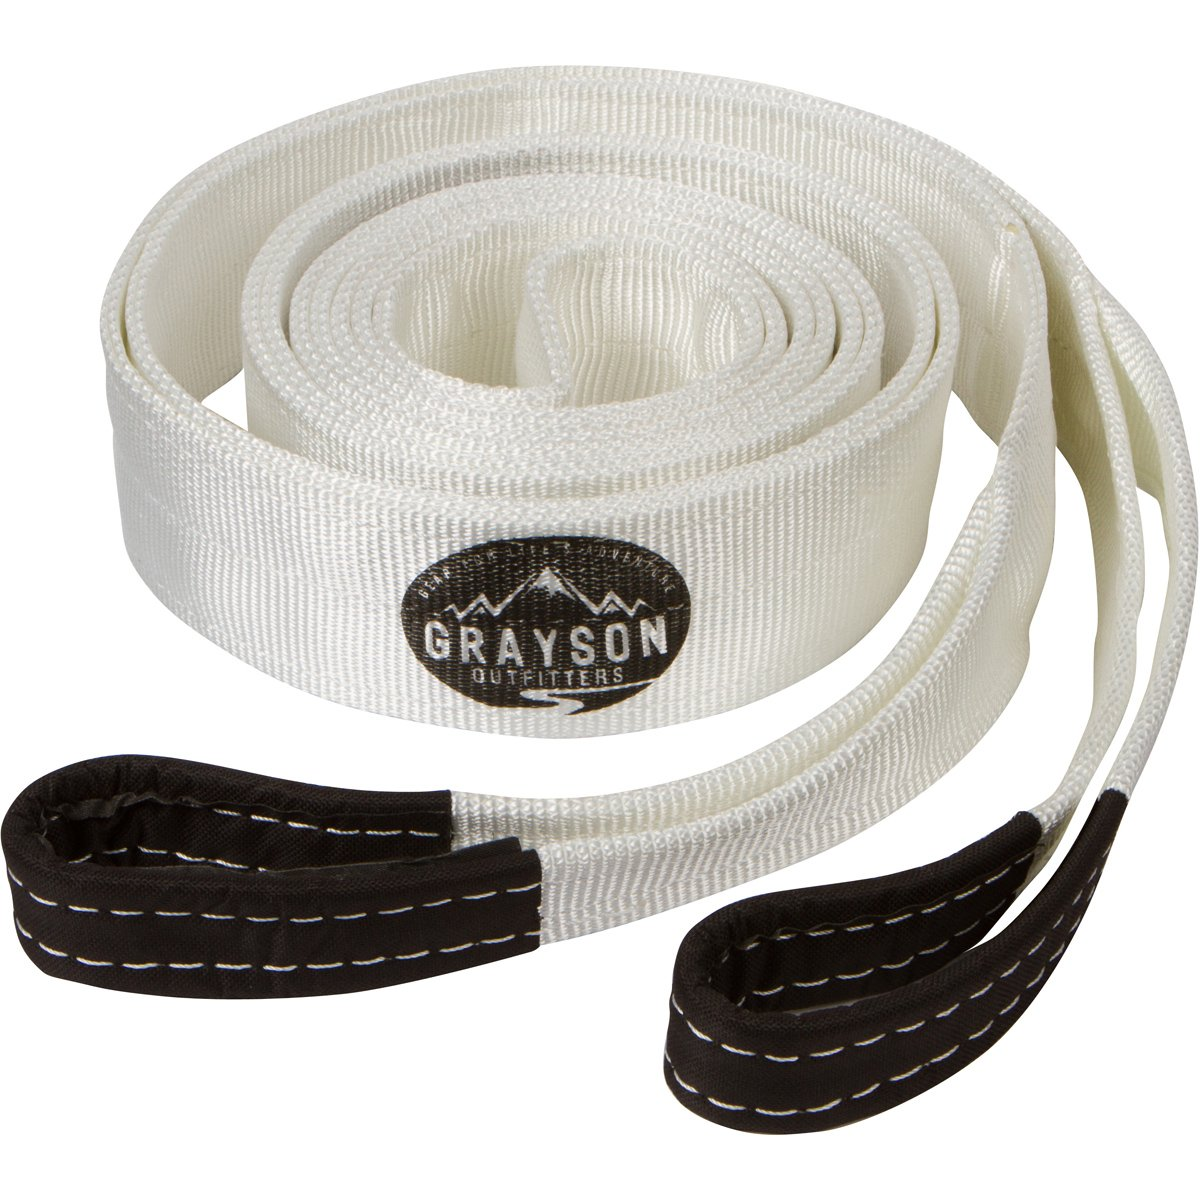 Grayson Outfitters Recovery Strap 20 Foot, 30,000 LBS; Heavy Duty Tow Strap And 4x4 Off Road Hauling Sling Best Suited For All Types Of Adventures